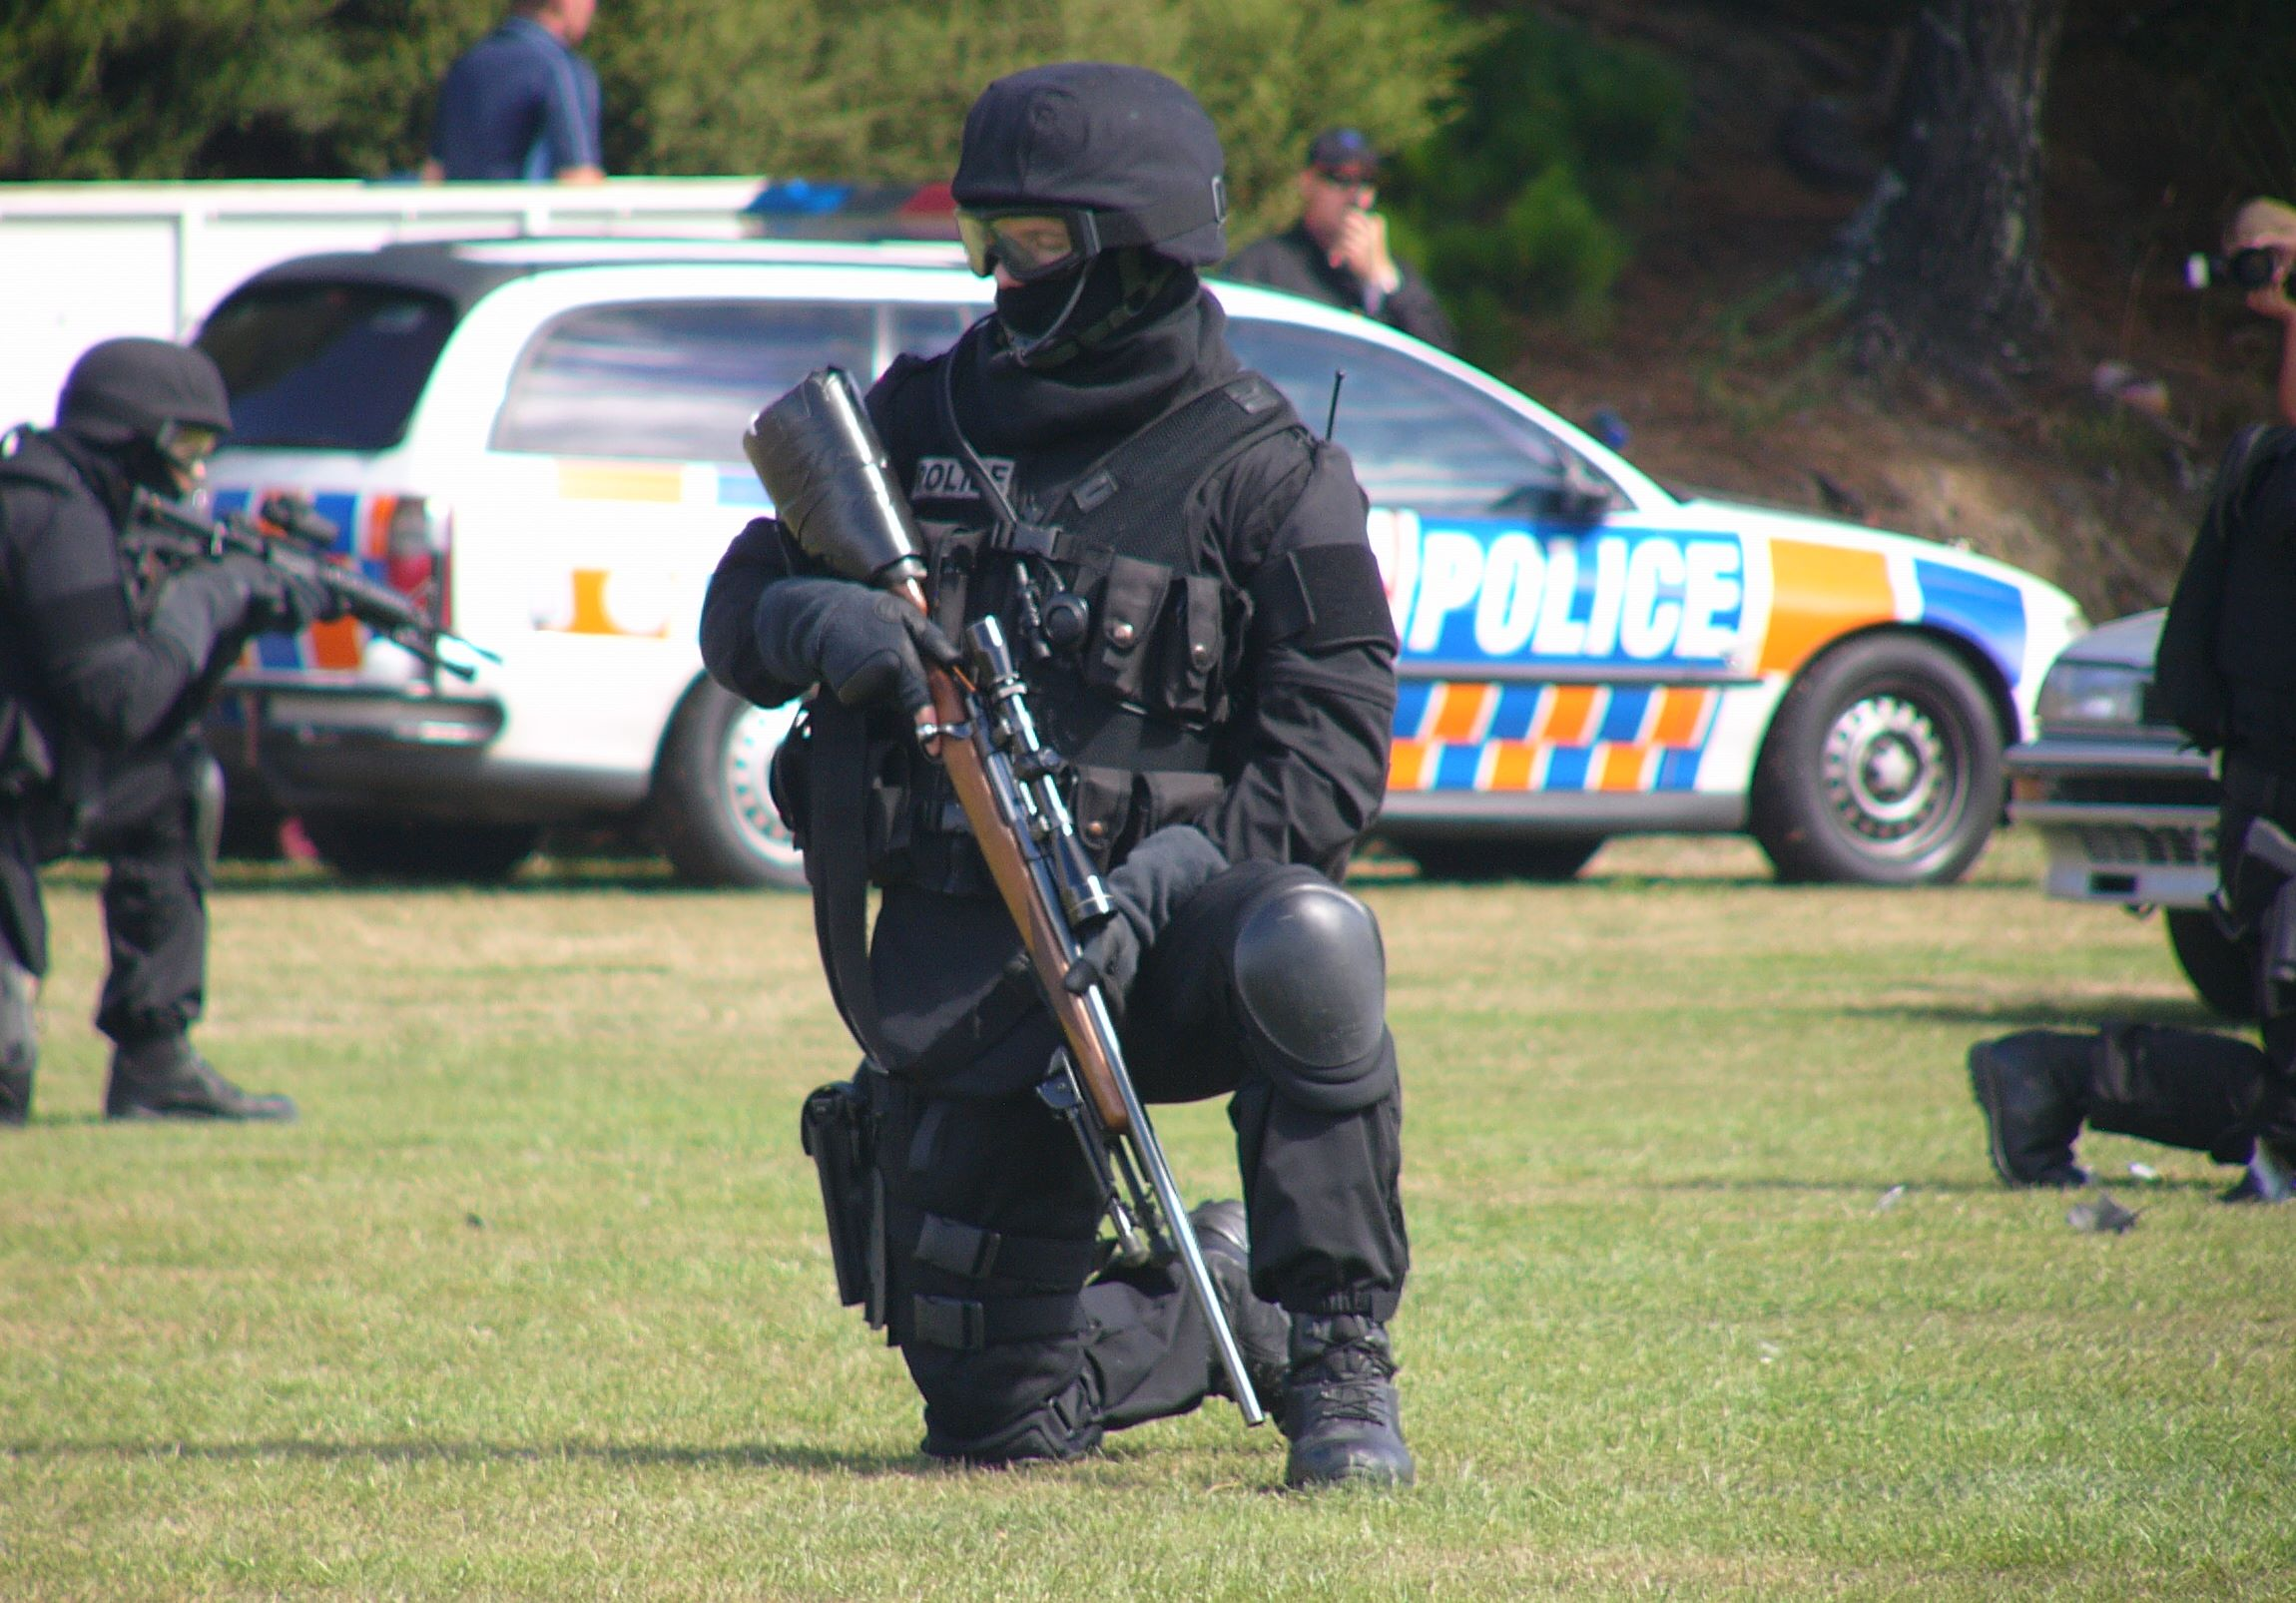 Nz Shooting Wikipedia: File:Wellington Armed Offenders Squad (AOS)